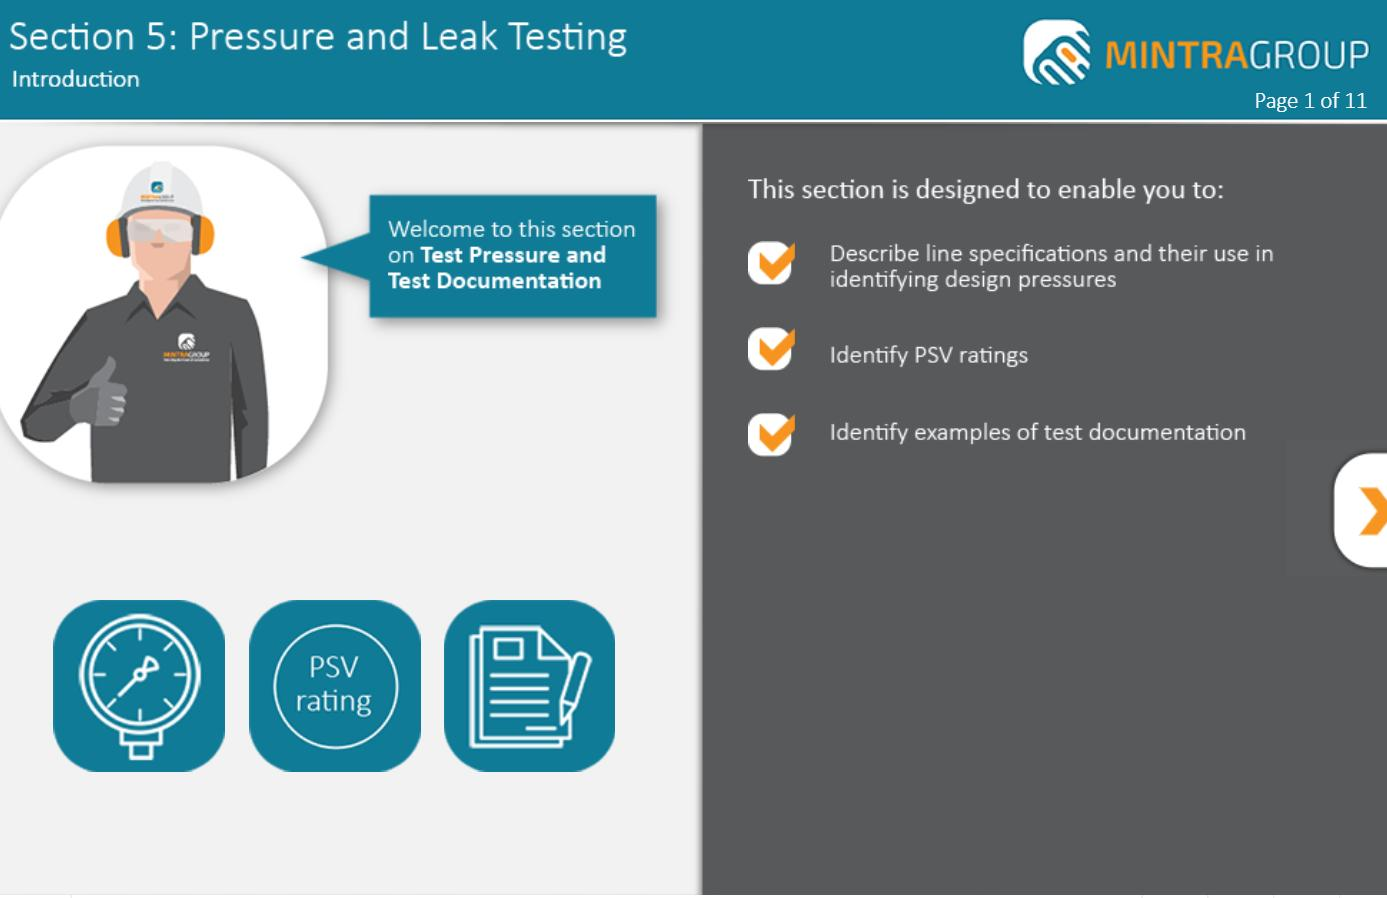 Pressure and Leak Testing Training 5